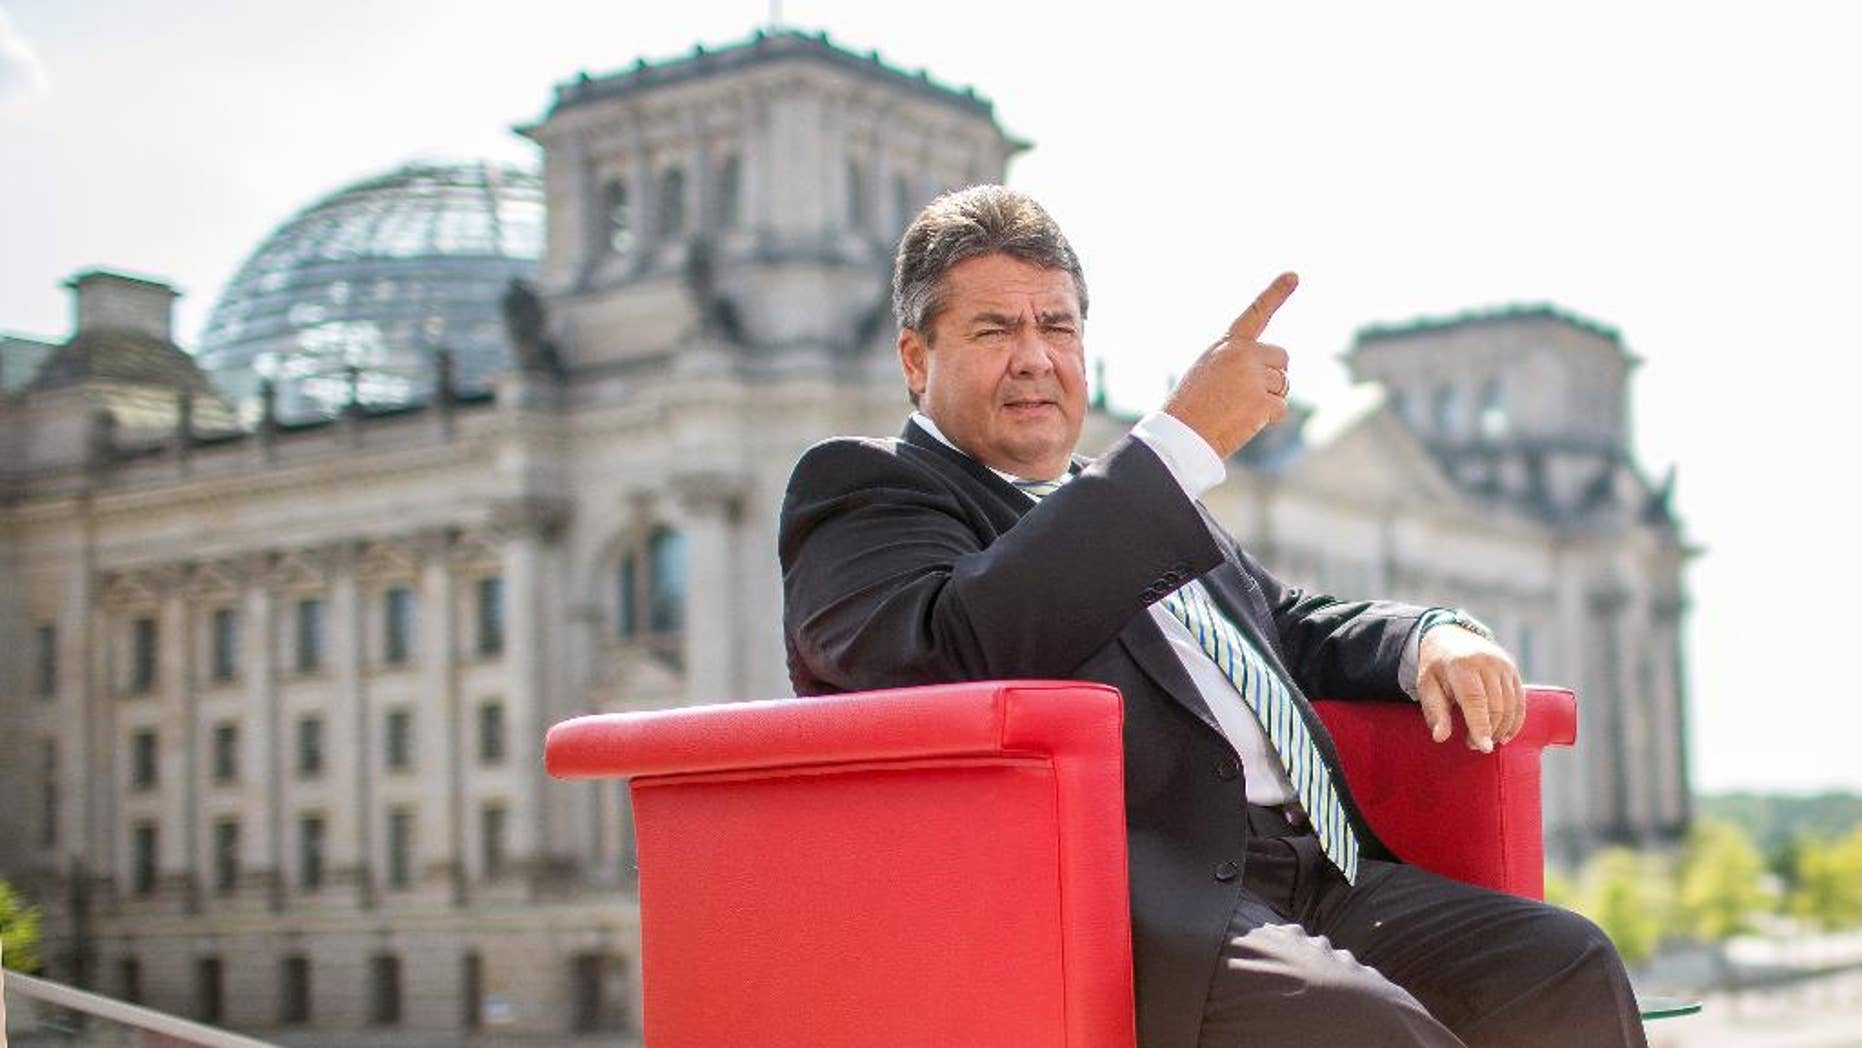 """German  vice chancellor and Minister for Economy,  Sigmar Gabriel  attends an interview by German  TV channel  ARD in Berlin, Sunday July 27, 2014.  In background the parliament building 'Reichstag' . Germany's vice chancellor says Europe should take aim at rich businesspeople who support Russia's government as  it increases pressure on Moscow over its actions in Ukraine. Sigmar  Gabriel, who is also Germany's economy minister, told ARD television Sunday that measures should target """"those on whose shoulders the Russian government stands:  the oligarchs, the billionaires.""""   (AP Photo/dpa/Hannibal Hanschke)"""